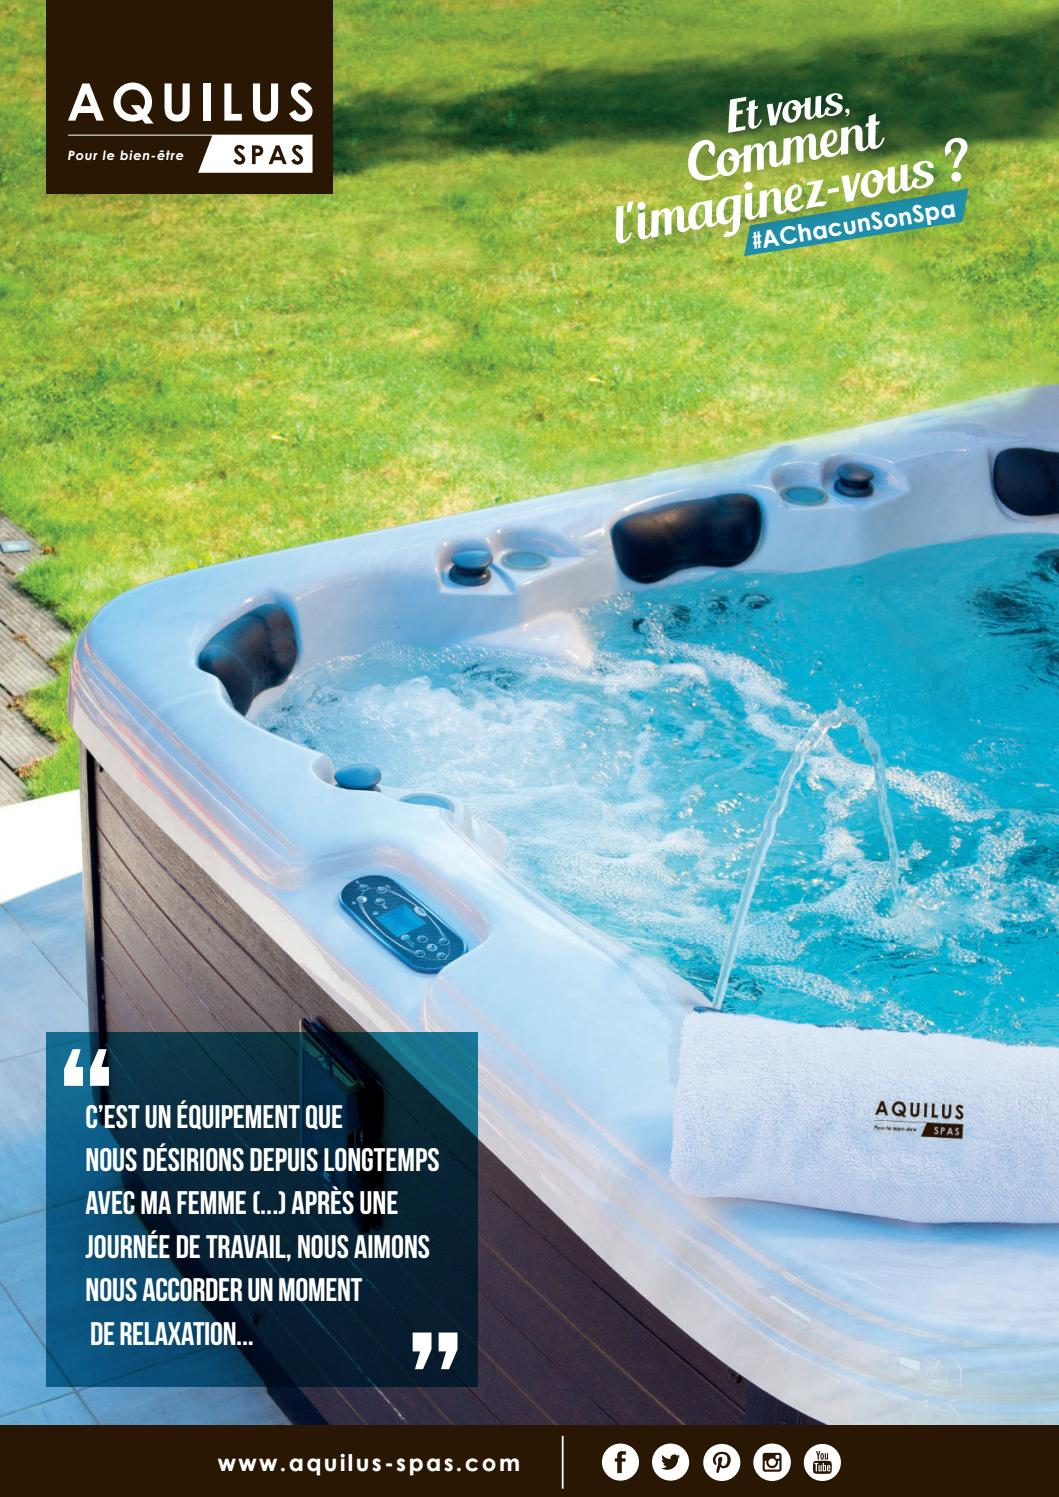 Comment Construire Un Jacuzzi catalogue aquilus spas 2019aquilus piscines et spas - issuu